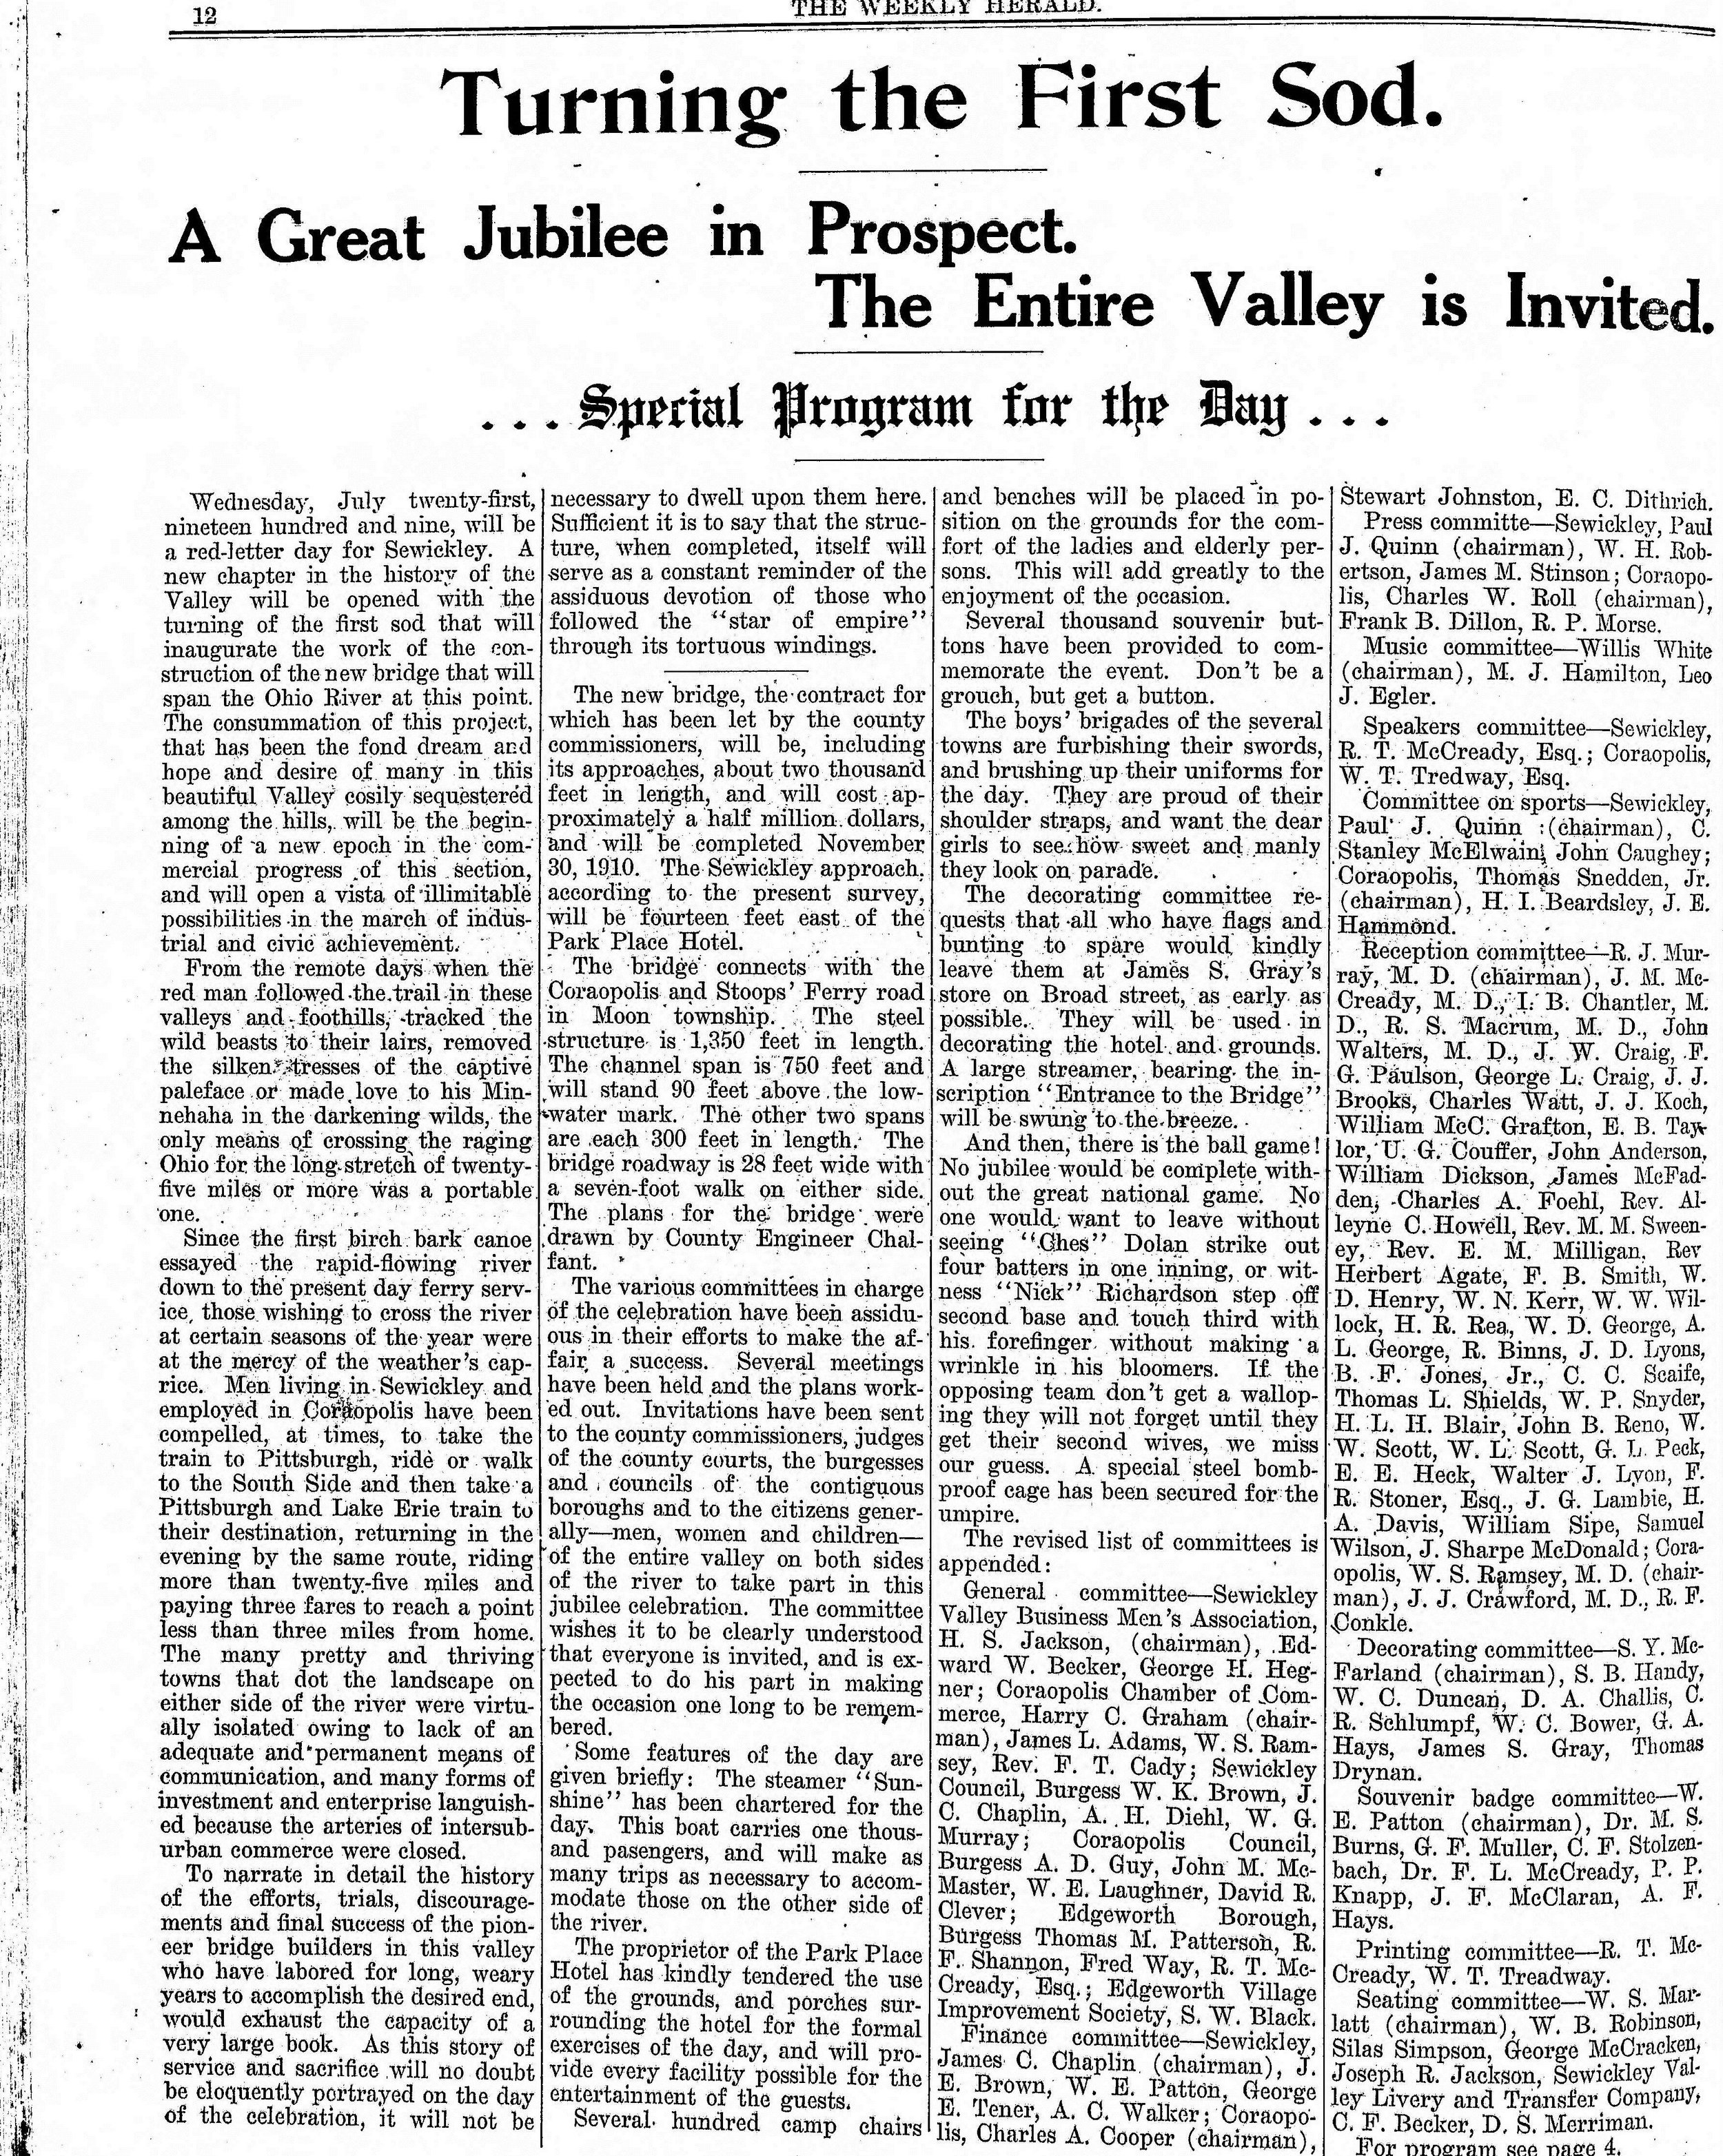 1909-07-17 The Weekly Herald (Sewickley Herald) - Turning the First Sod (pg12).jpg